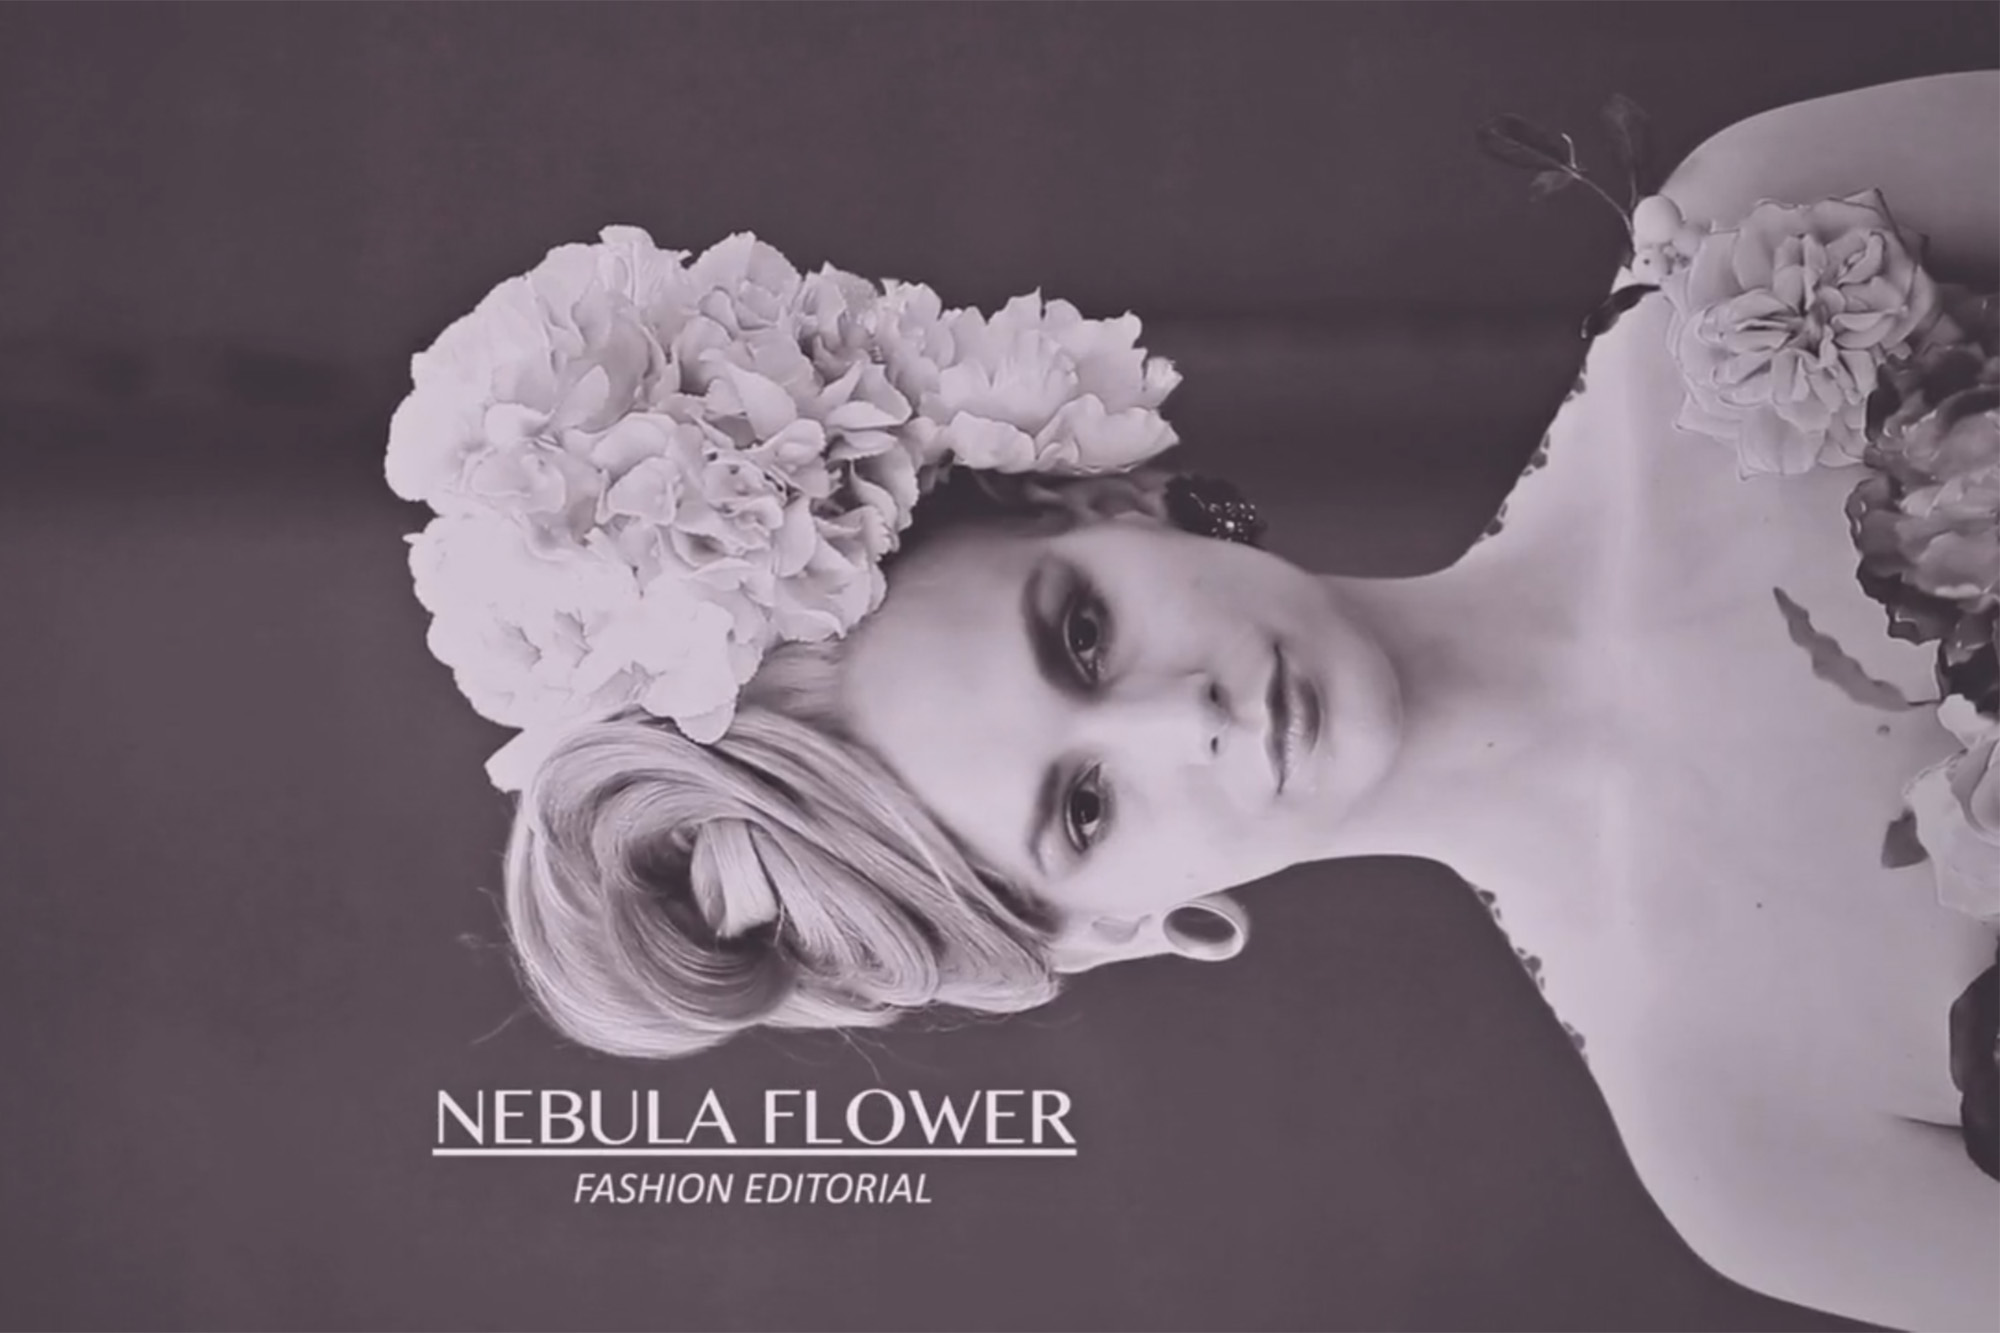 Nebula Flower Video